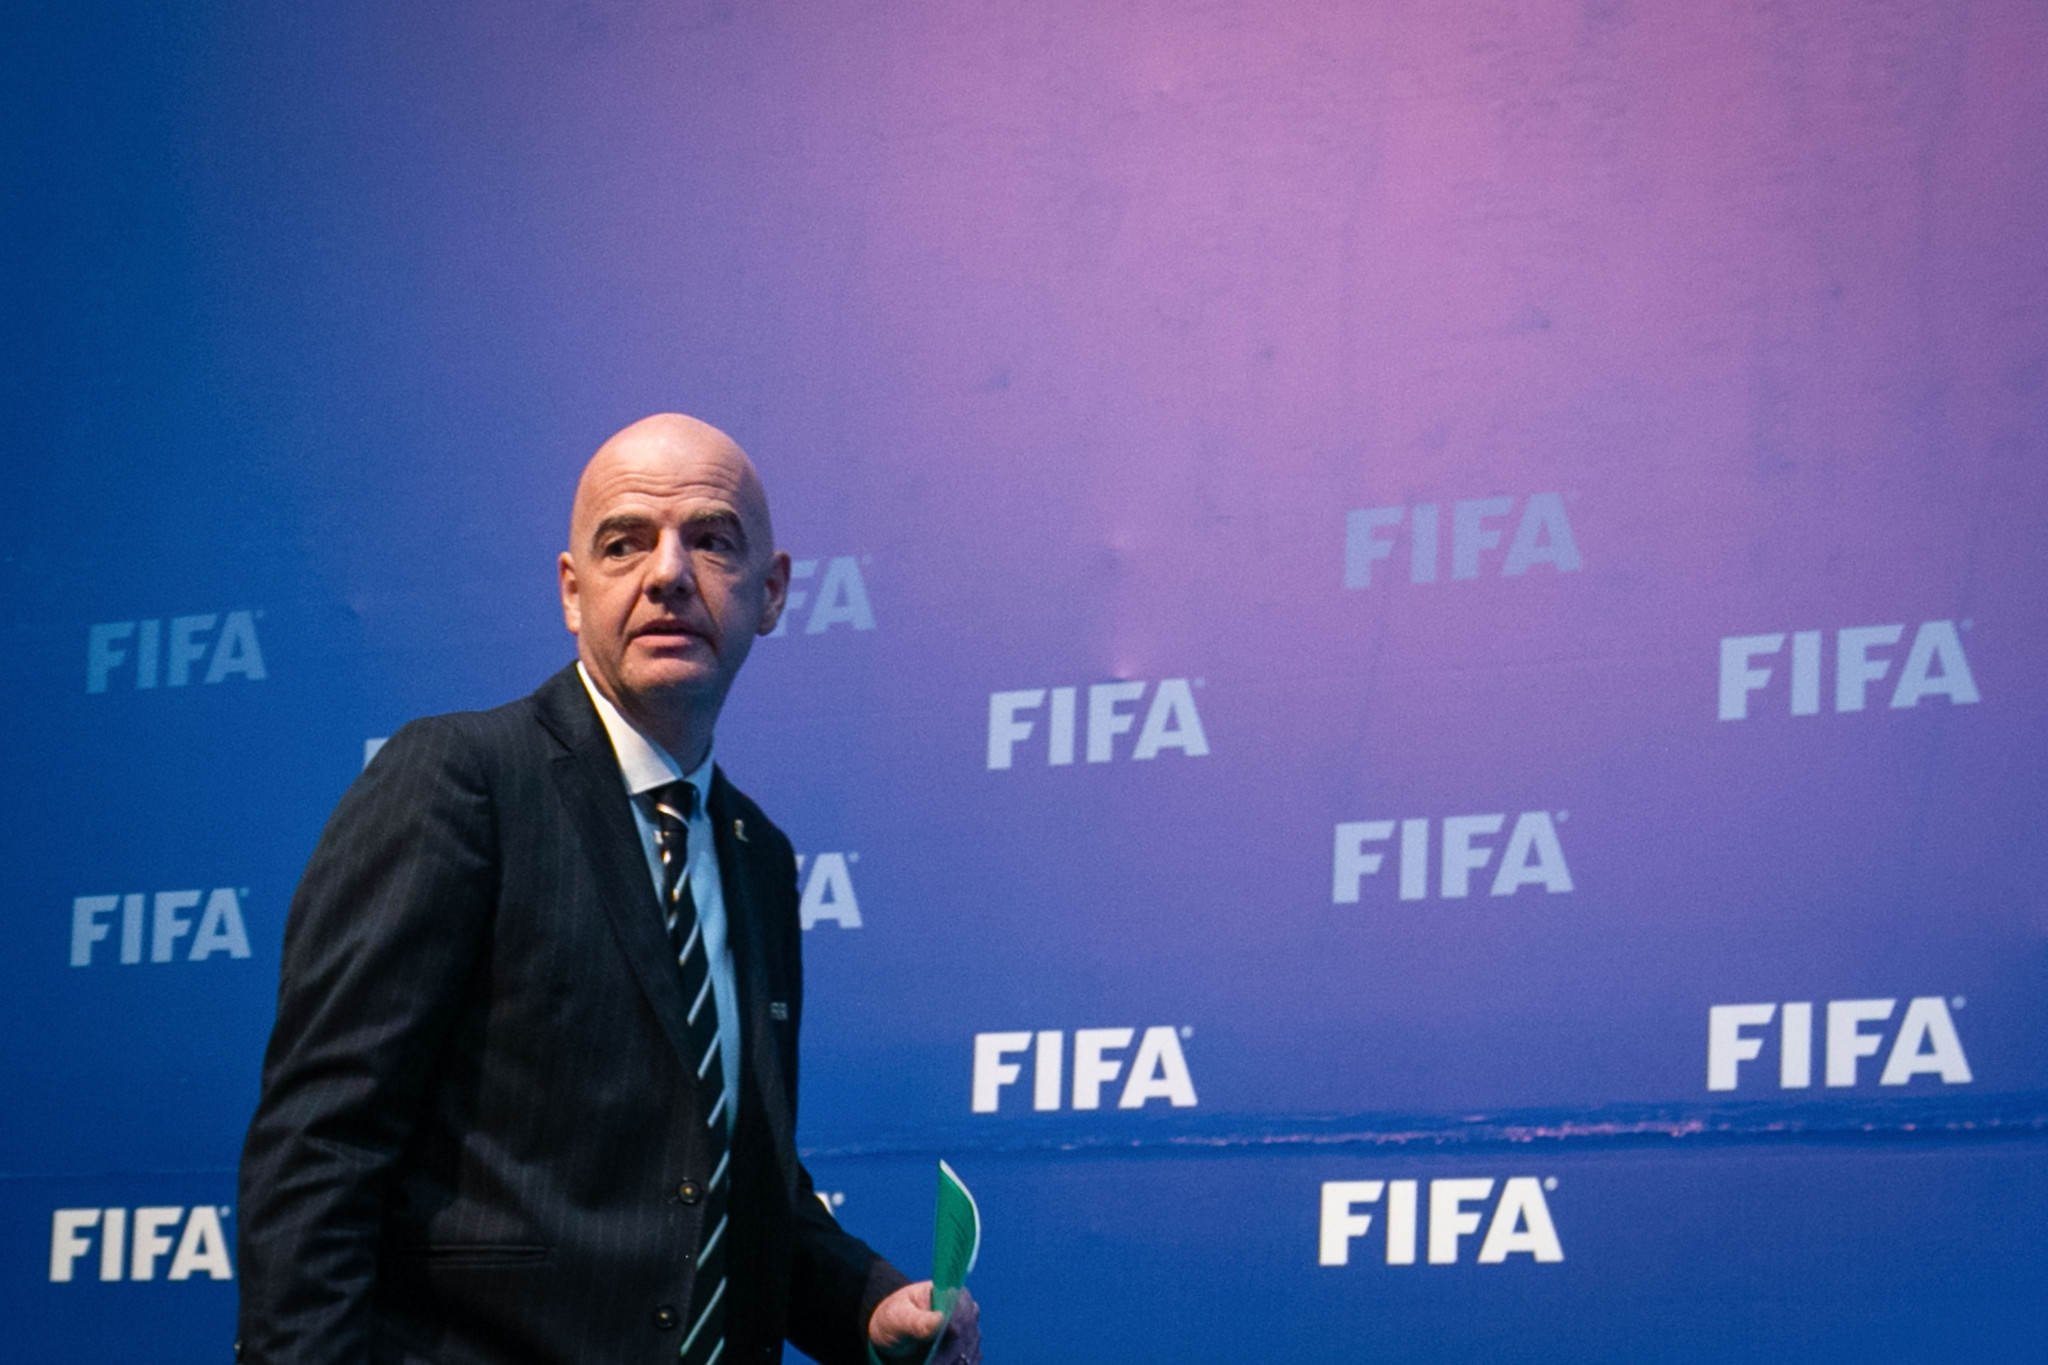 Leaked documents show Infantino influenced changes to ethics code, report claims